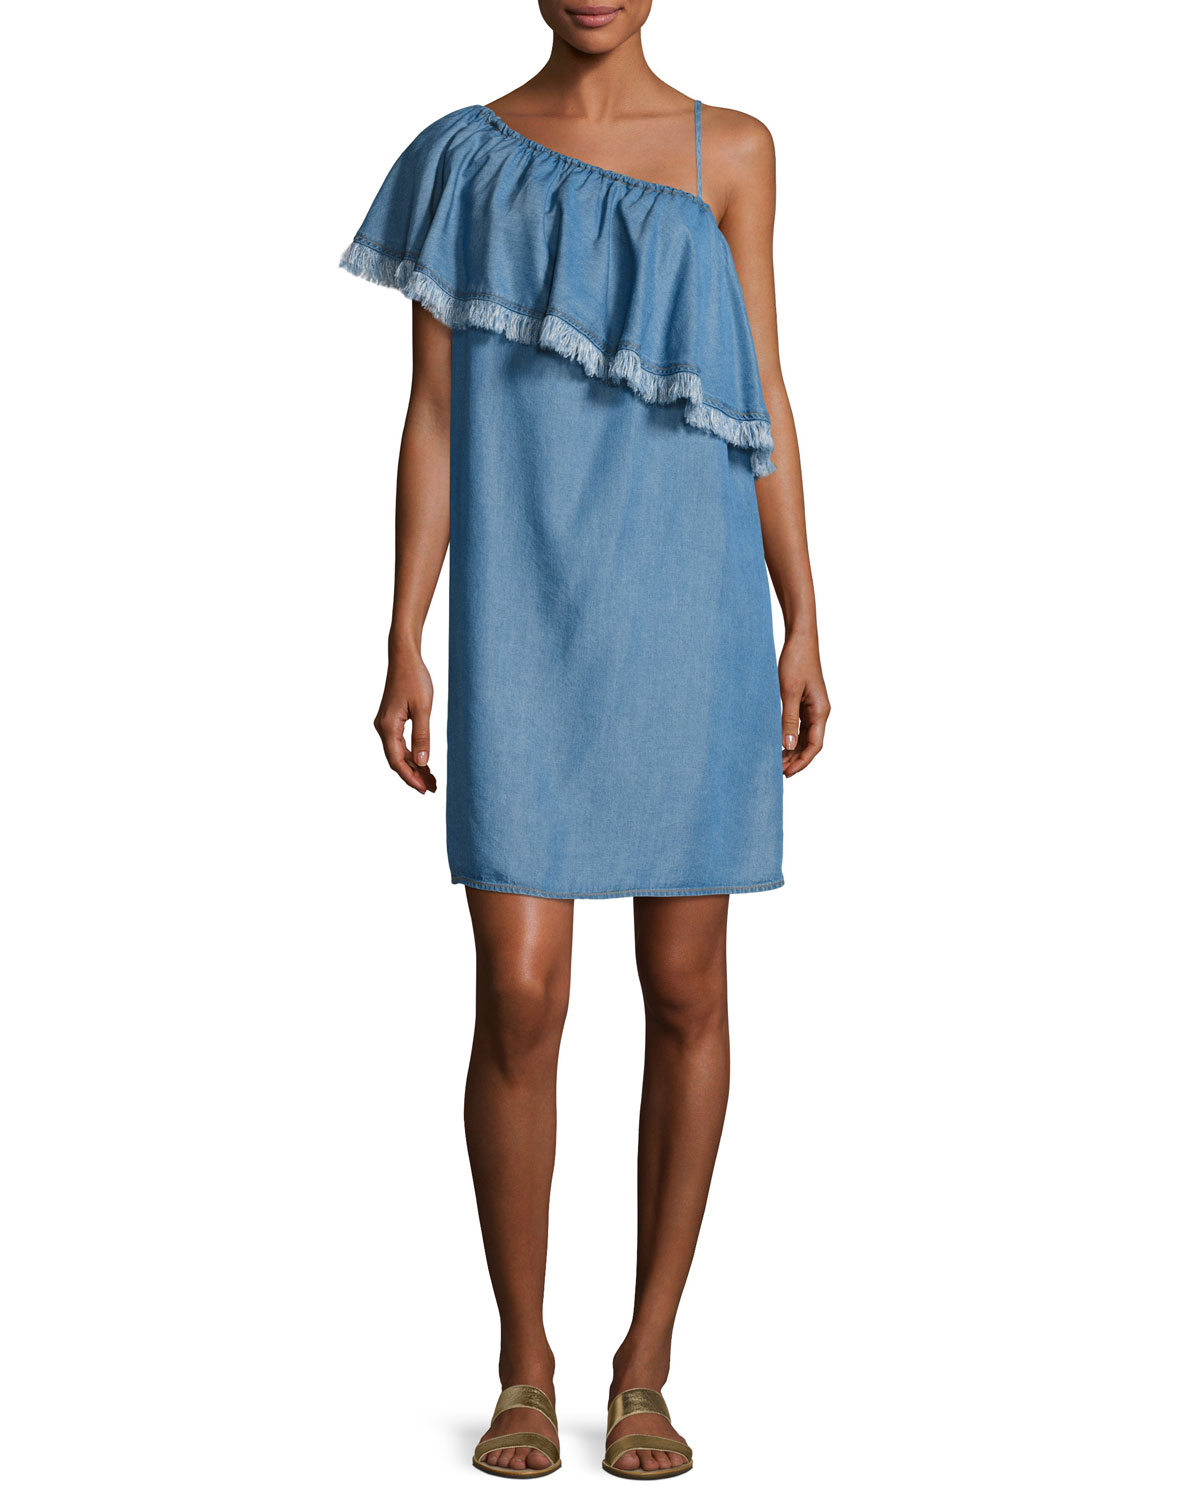 ad29bfcbff46 Splendid Indigo Asymmetric Fringed Chambray Dress